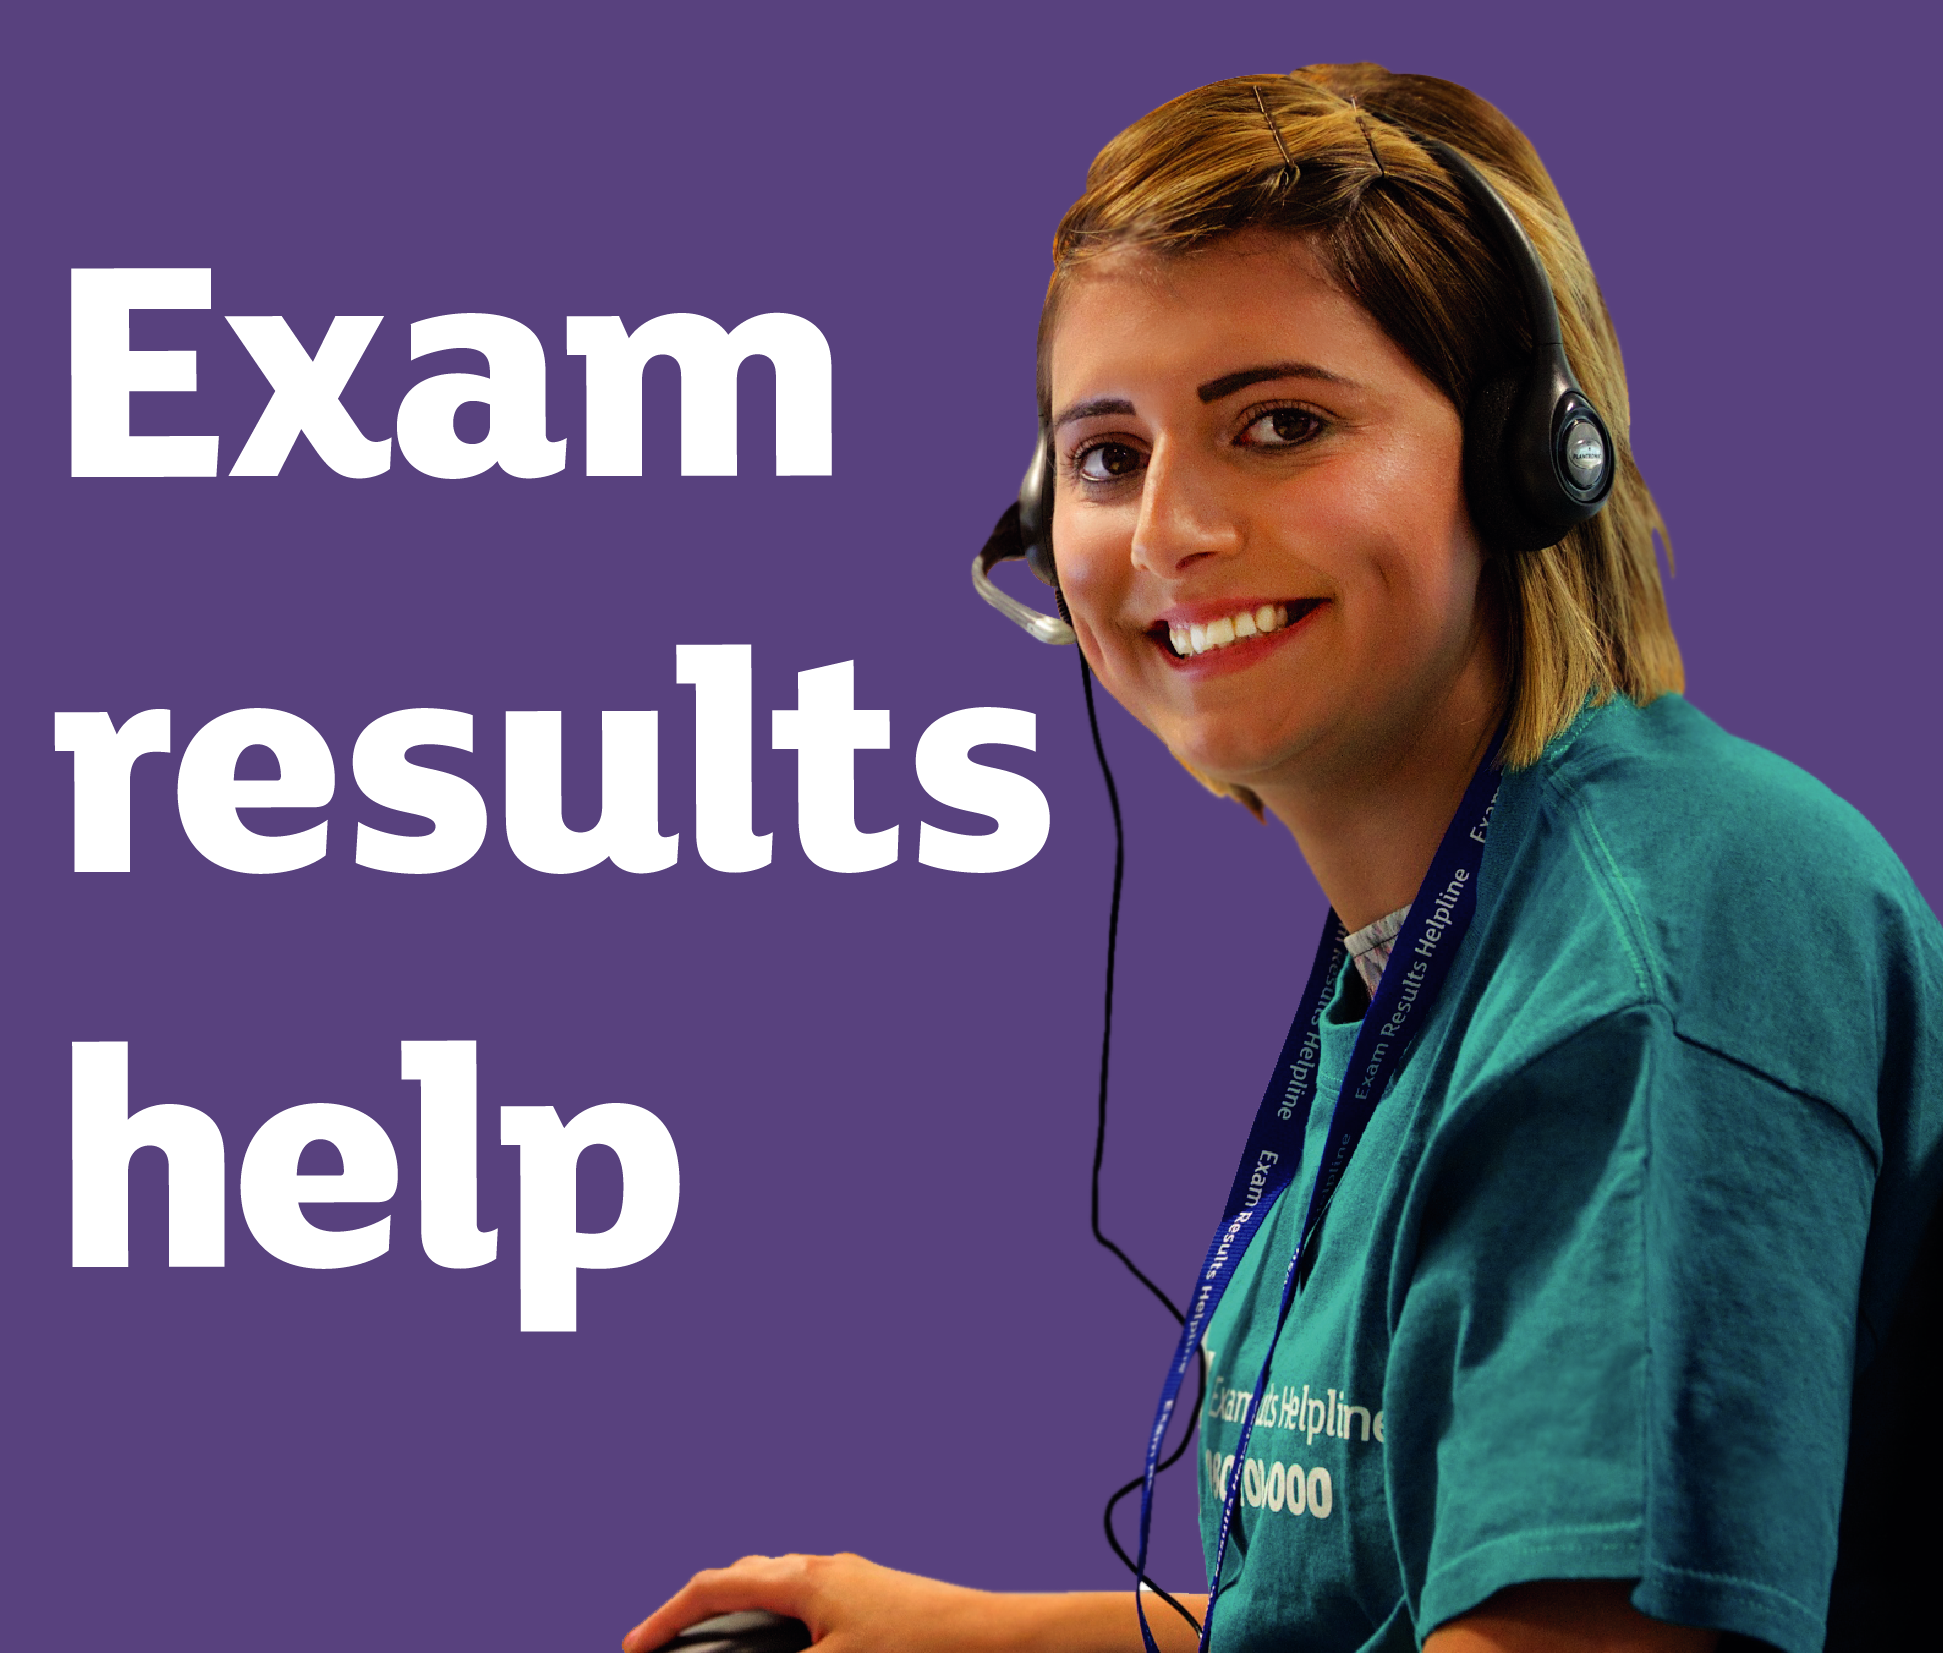 SDS careers advisers will offer exam results help